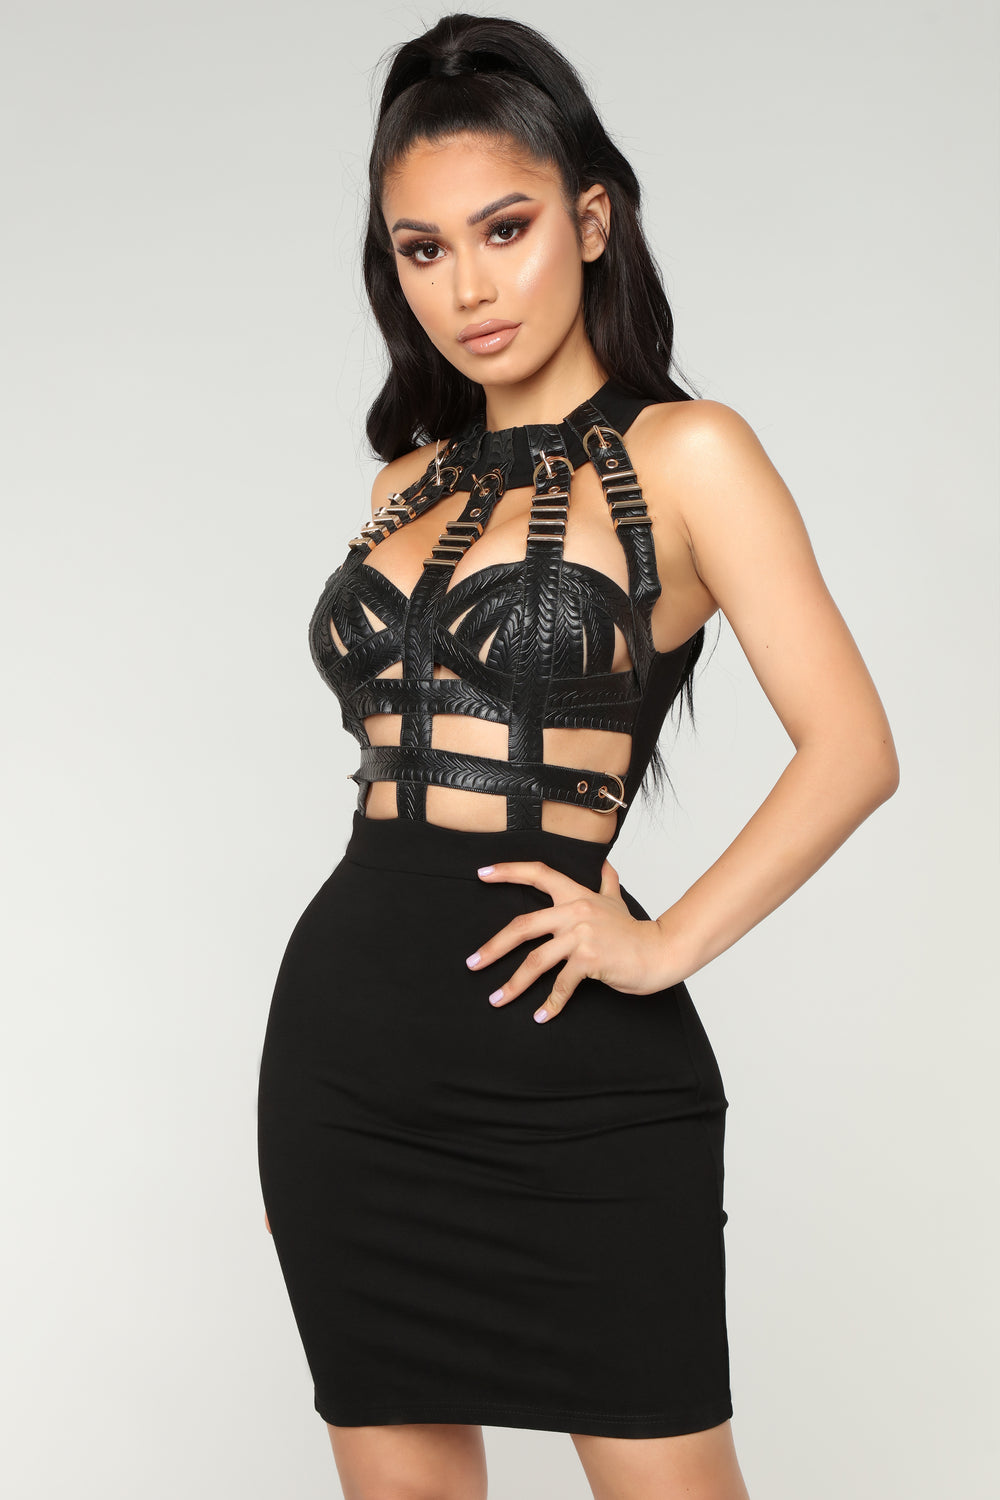 Queen Status Mini Dress - Black